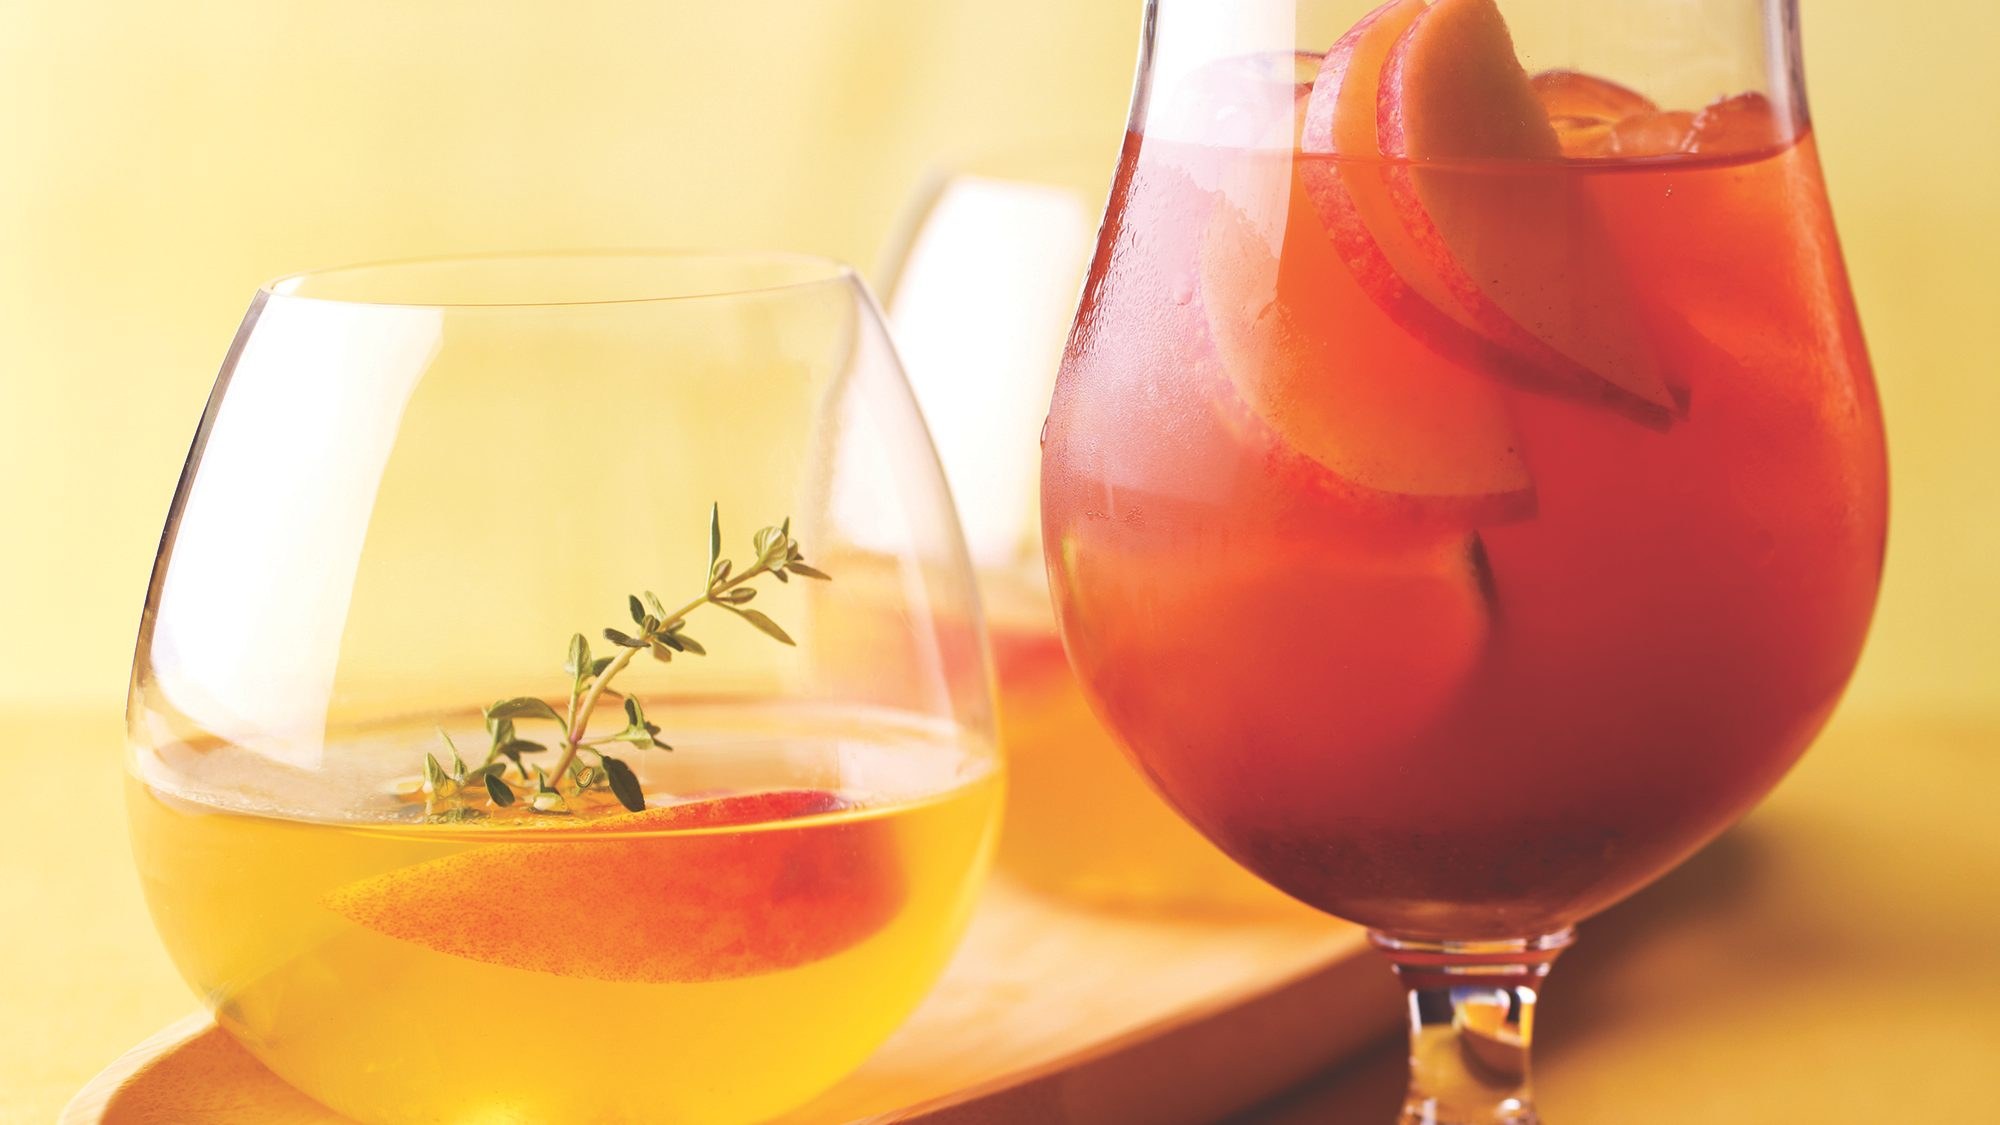 McCormick Peach Gin Cocktail with Thyme Syrup